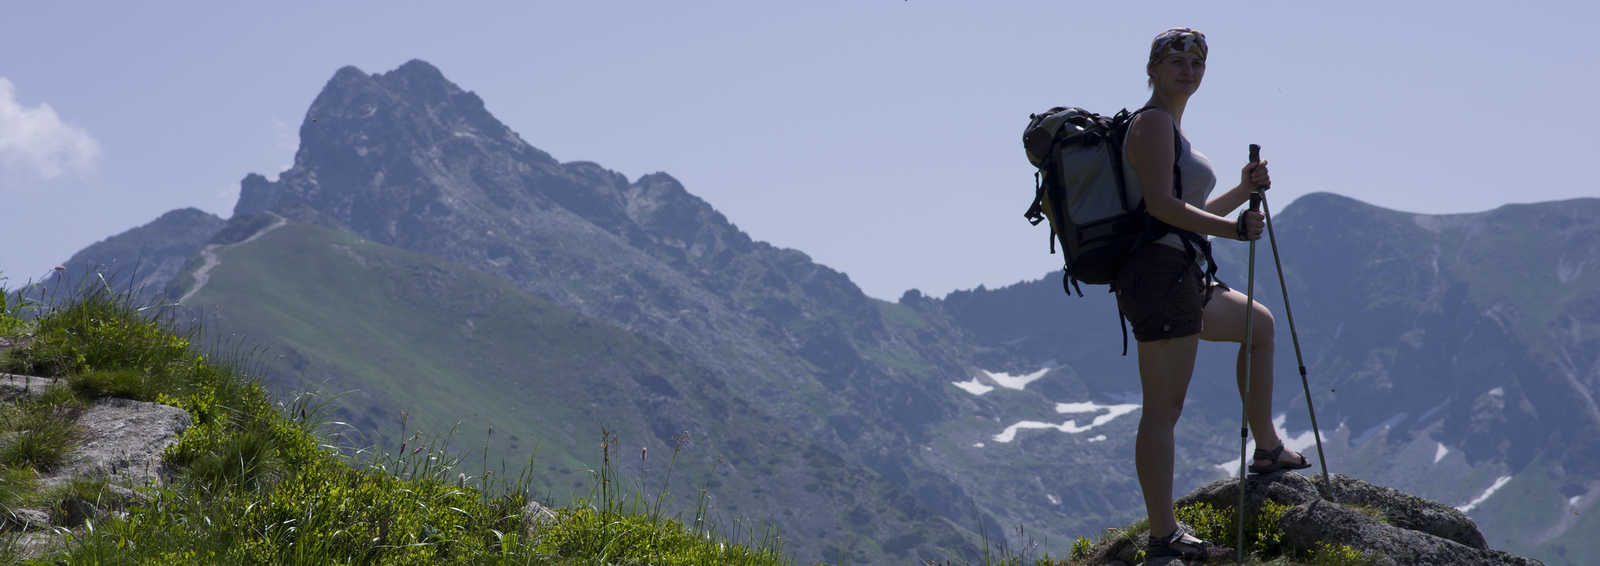 Hiker on the top of the mountain, Poland